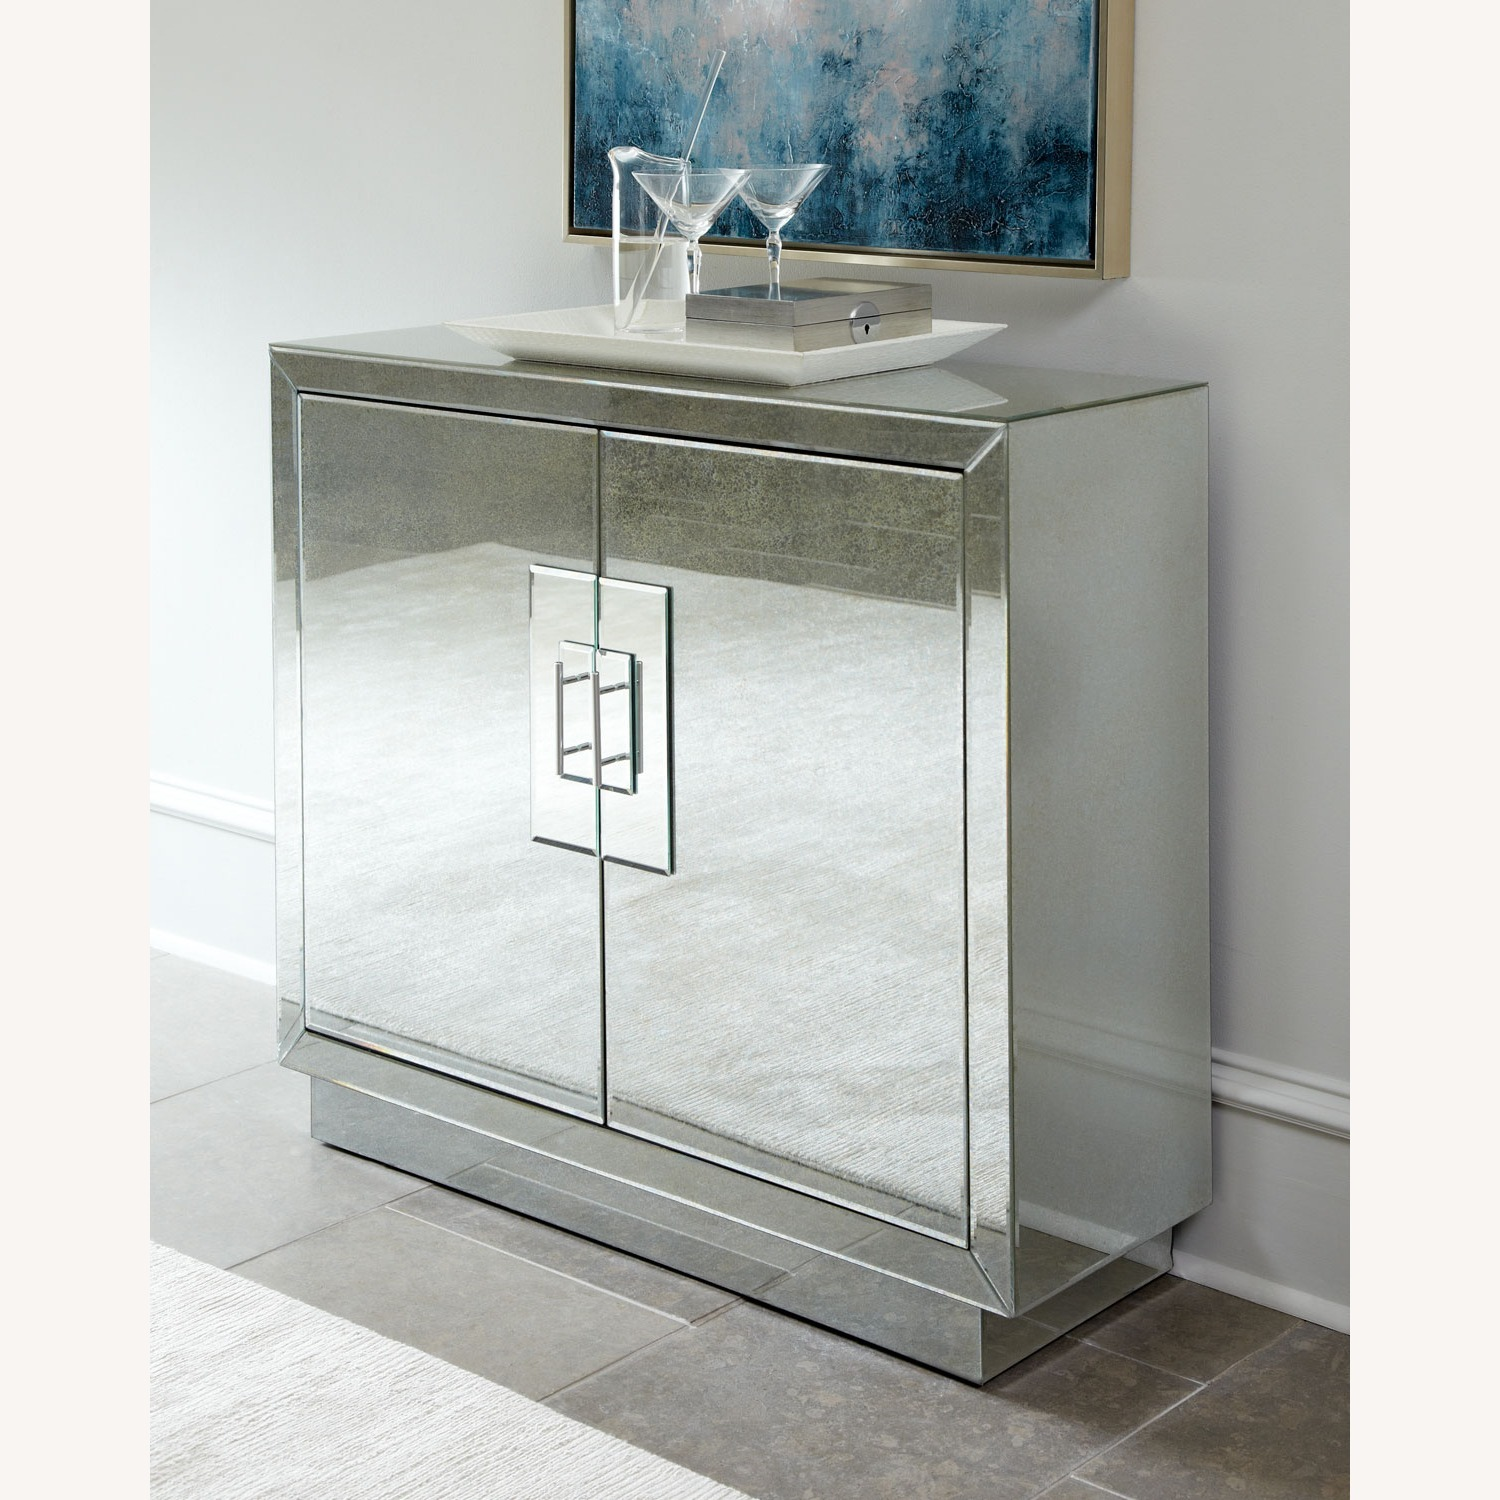 Horchow Lily Mirrored Contemporary Cabinet - image-0